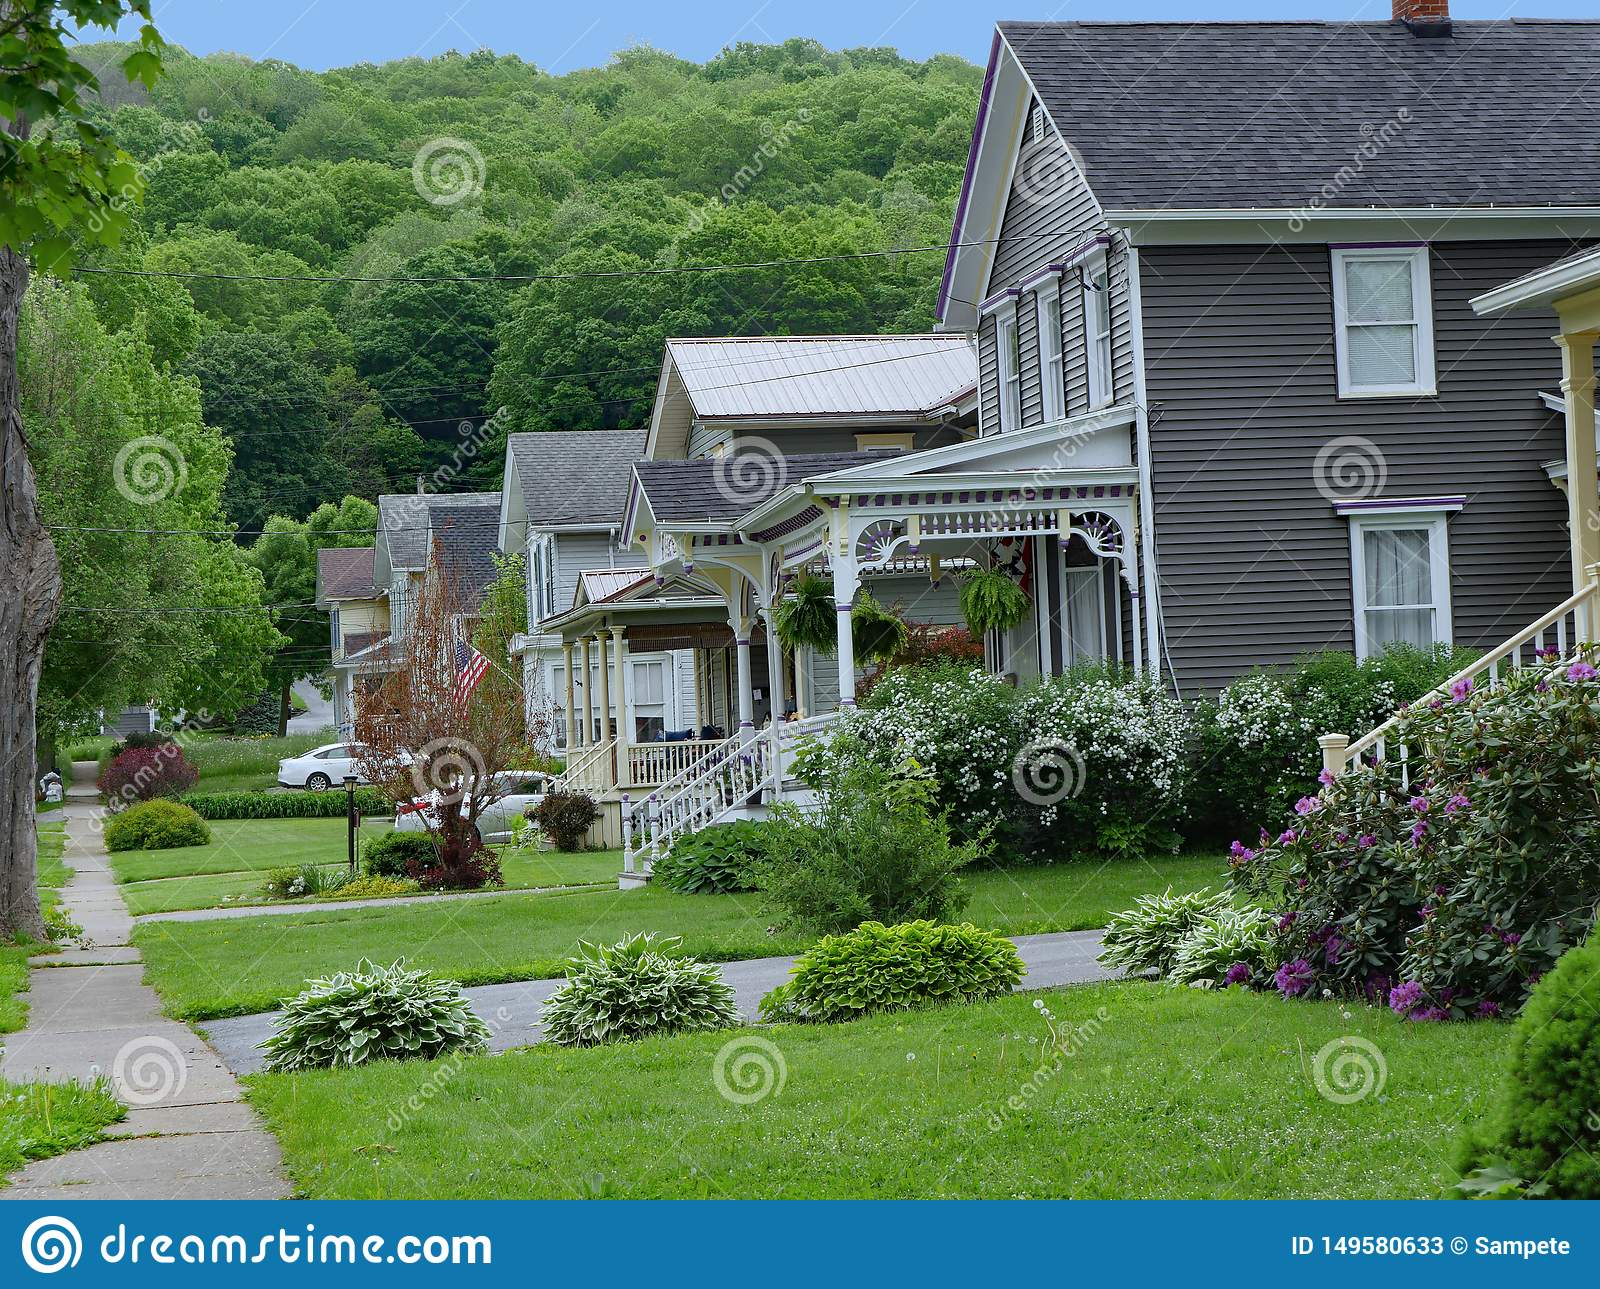 Street Of Houses In A Small American Town Stock Image Image Of